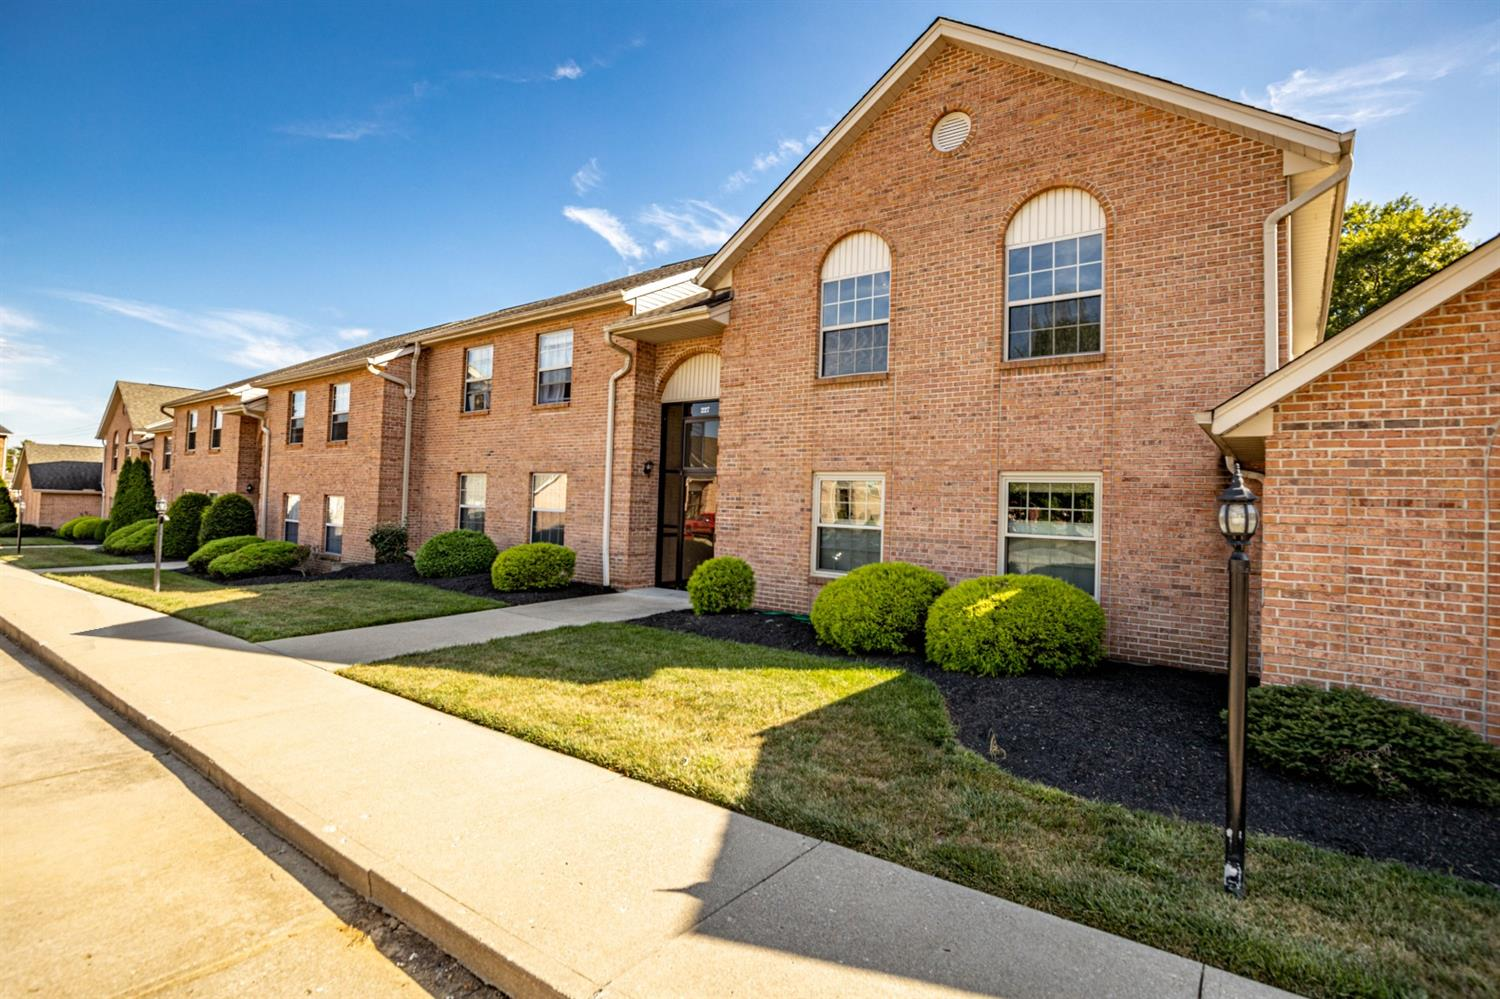 Property for sale at 227 Morgans Way Unit: 48, Harrison,  Ohio 45030